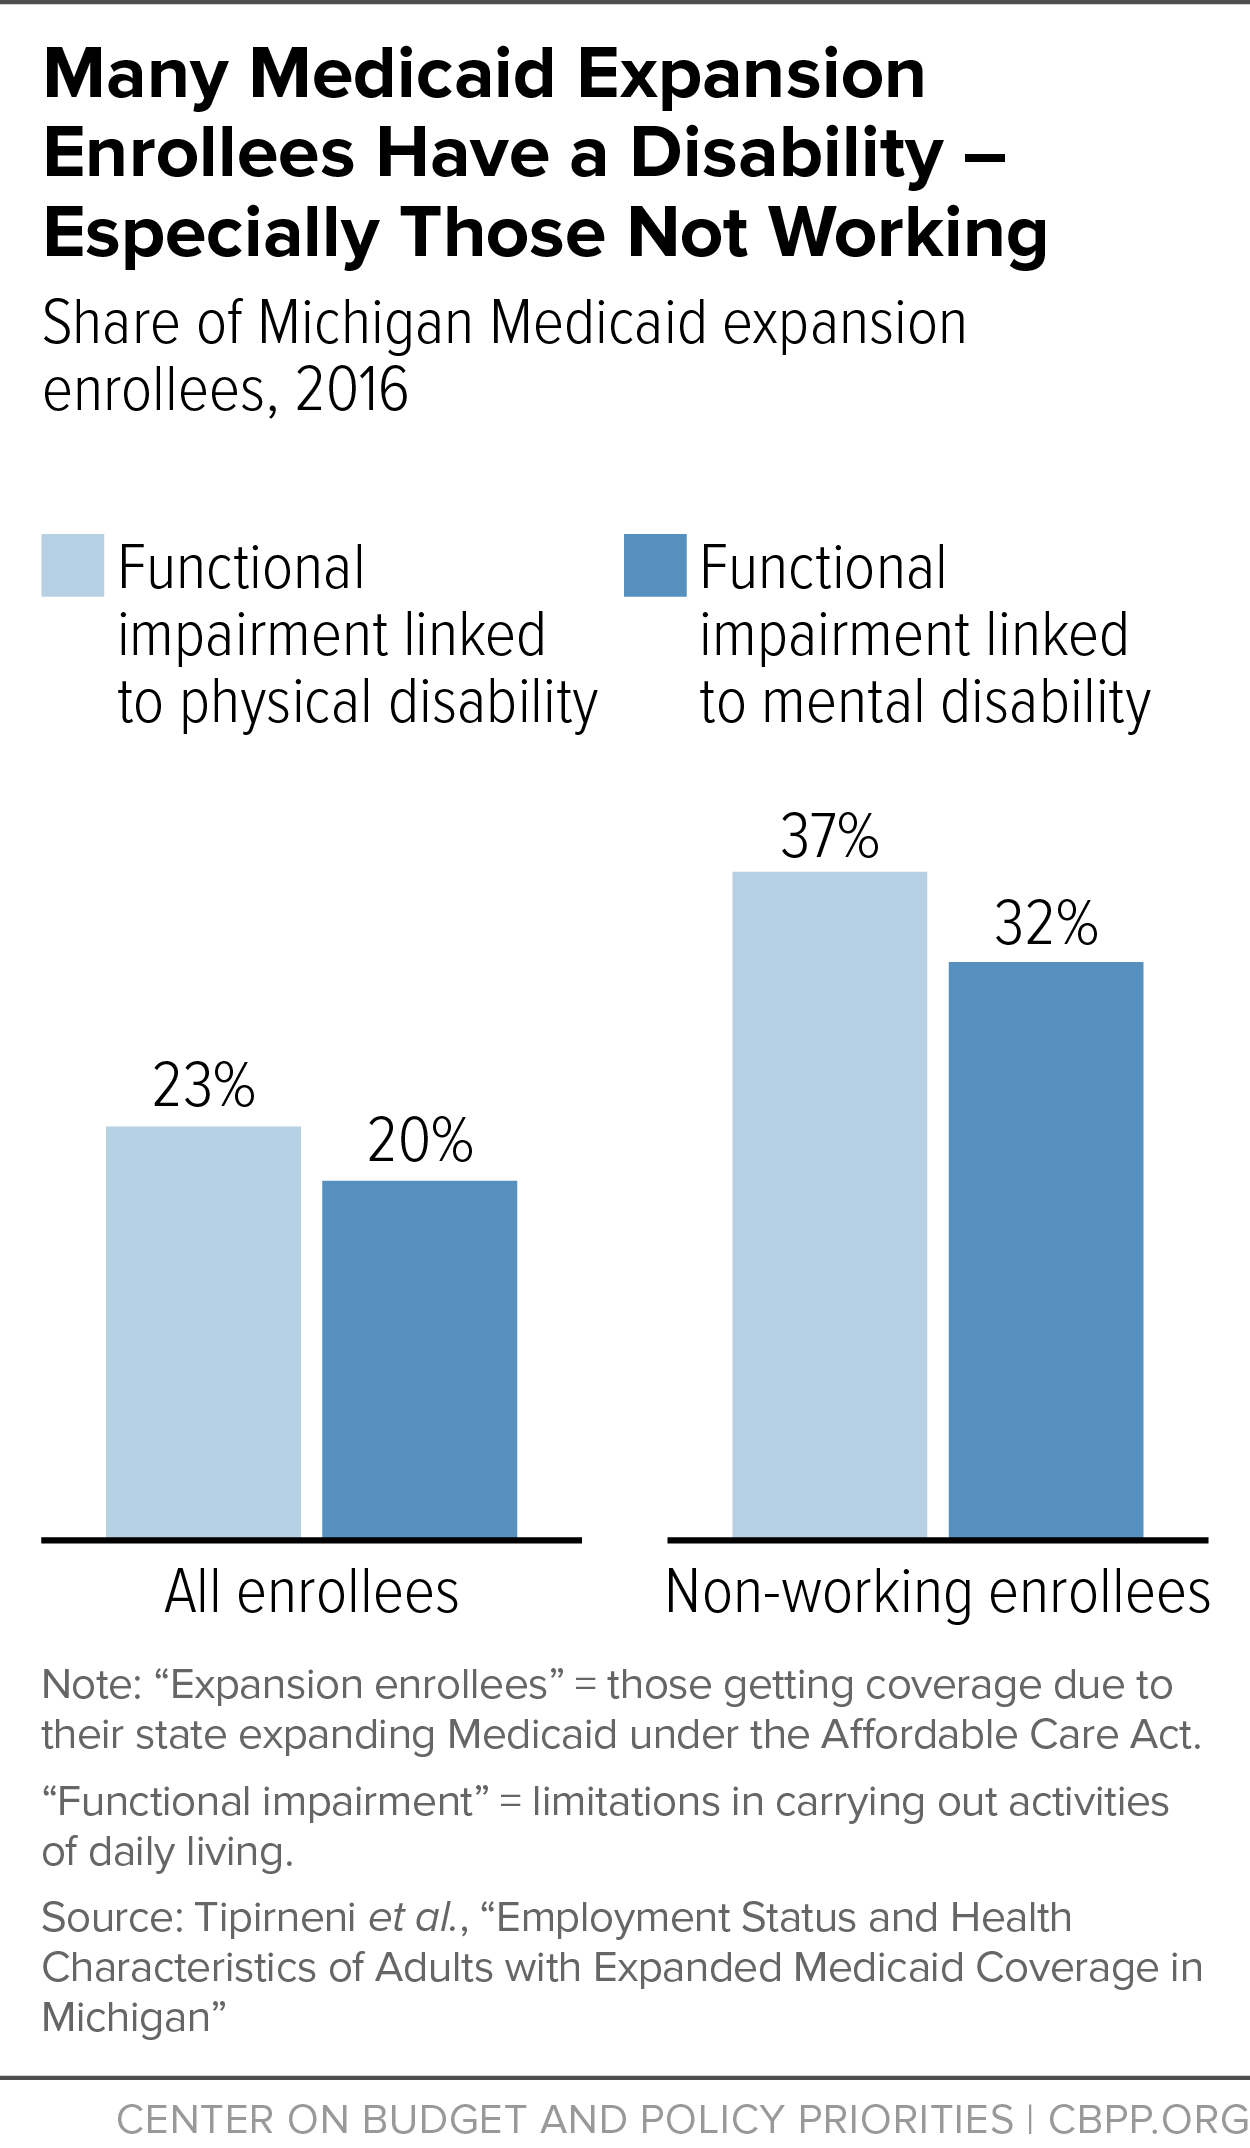 Many Medicaid Expansion Enrollees Have a Disability - Especially Those Not Working